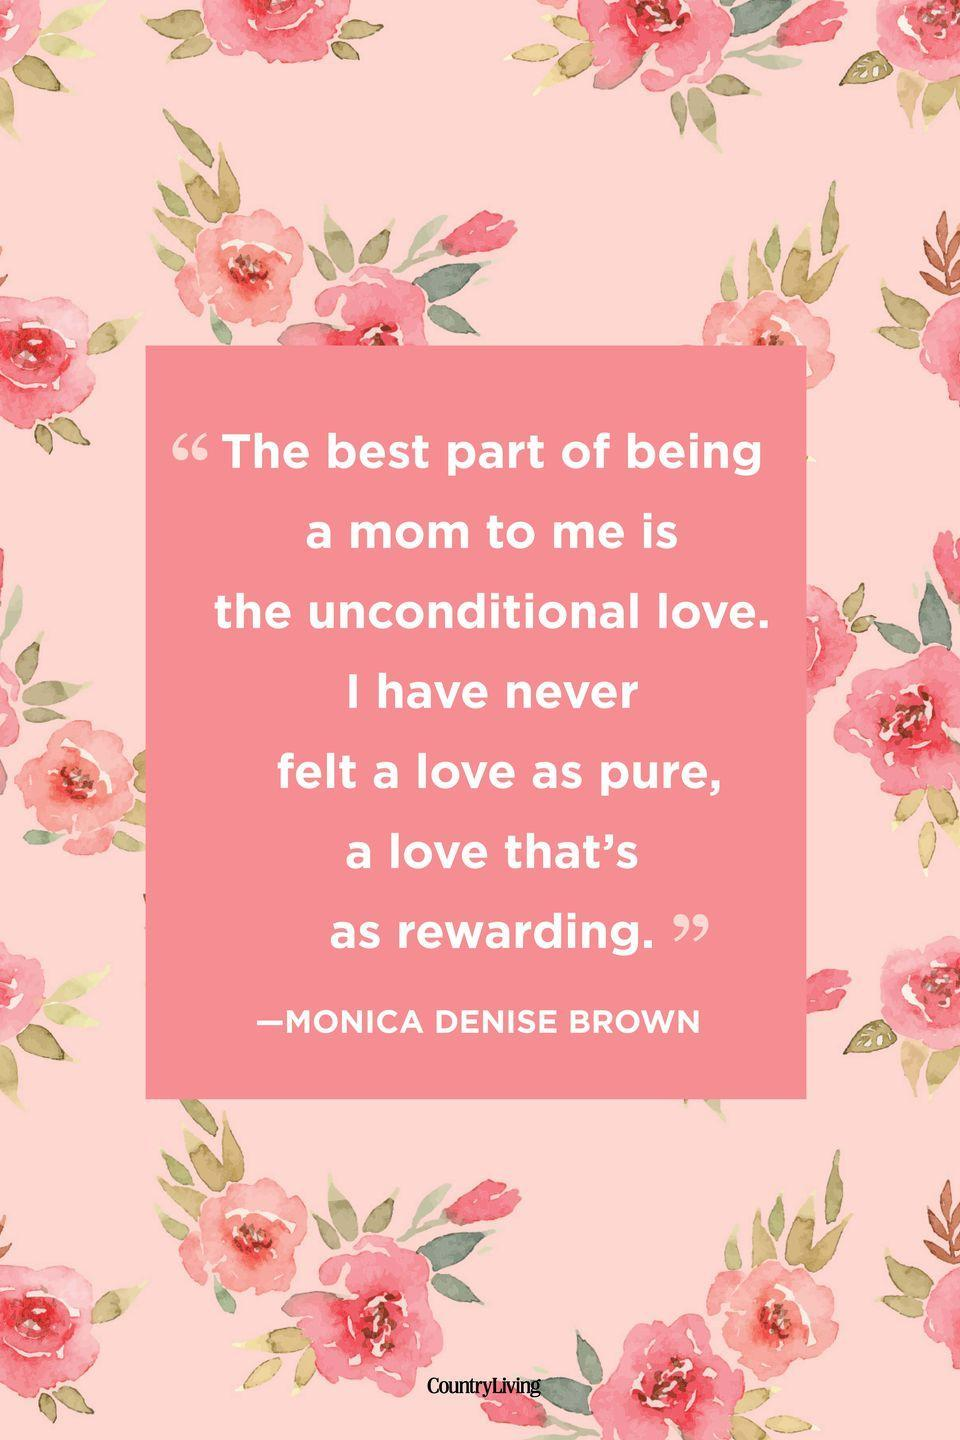 "<p>""The best part of being a mom to me is the unconditional love. I have never felt a love as pure, a love that's as rewarding.""</p>"